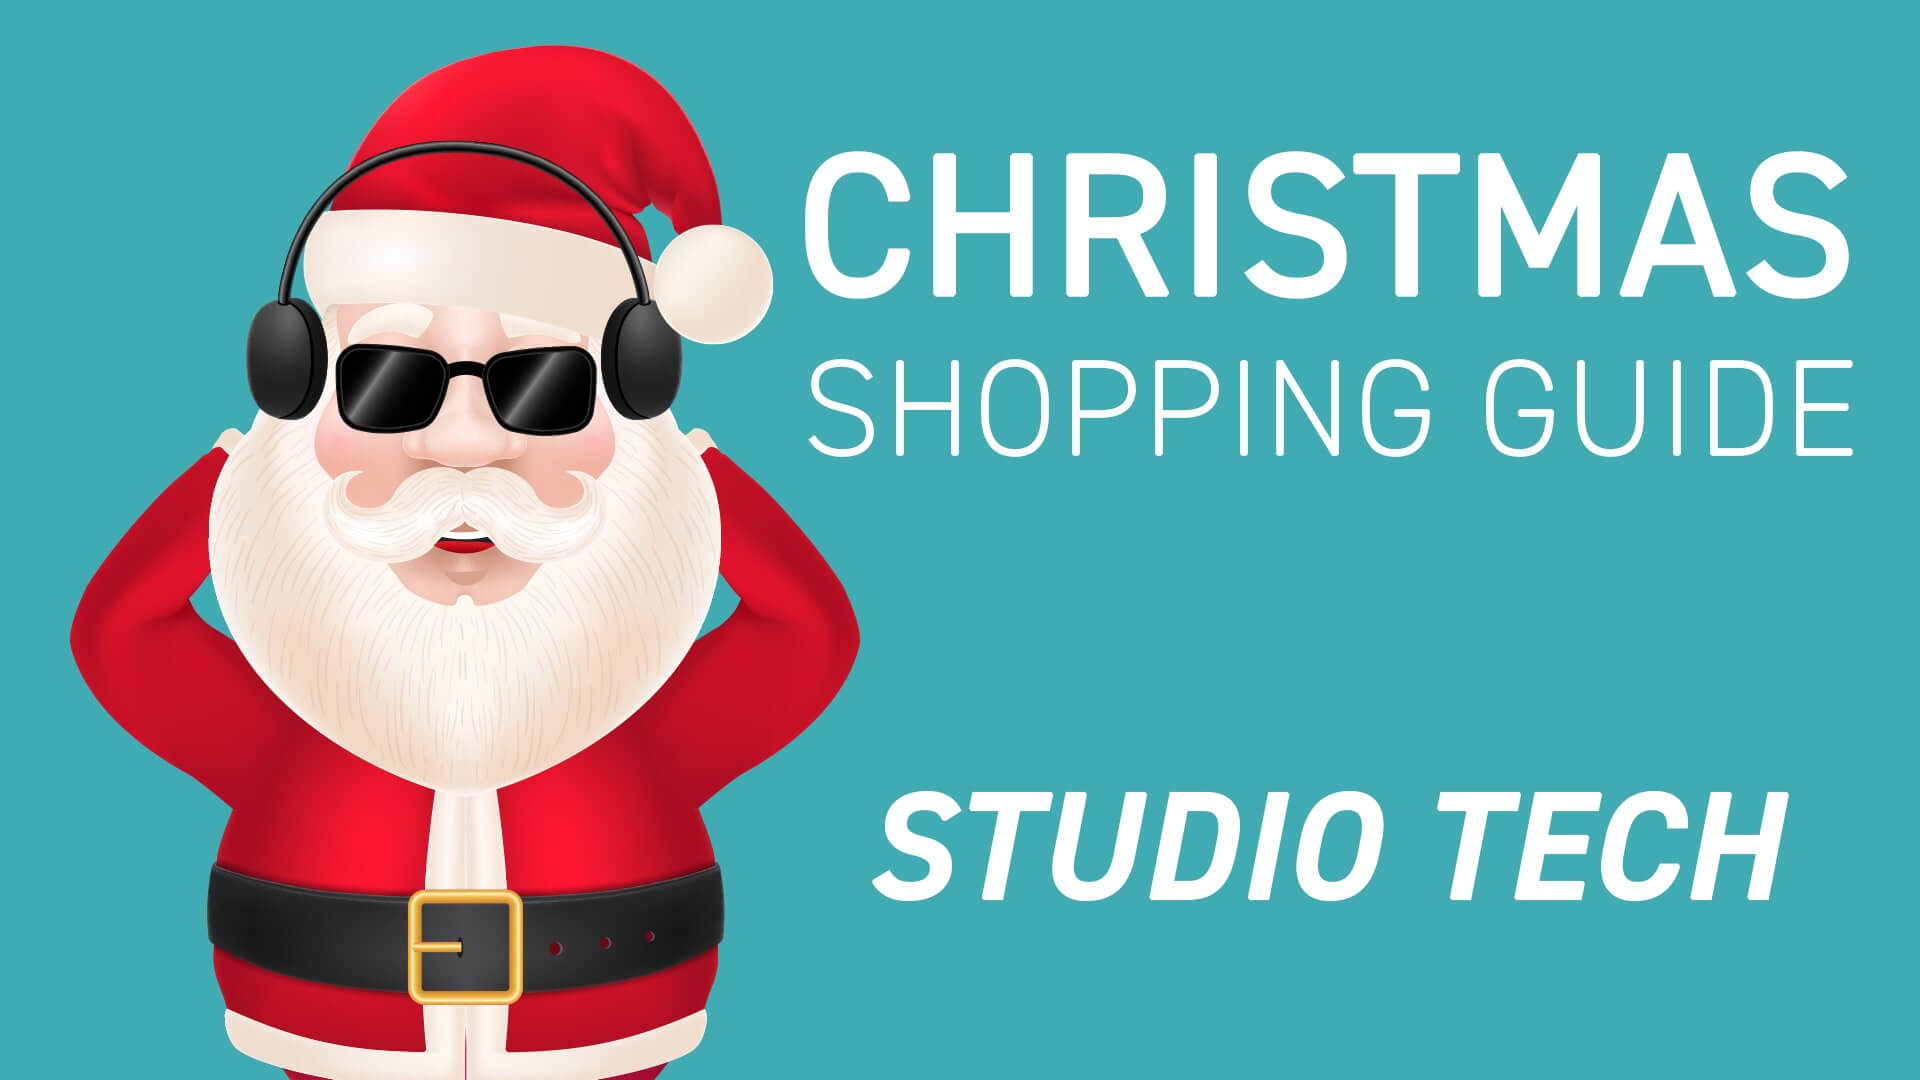 6 Christmas gifts for a Studio Tech under 100$